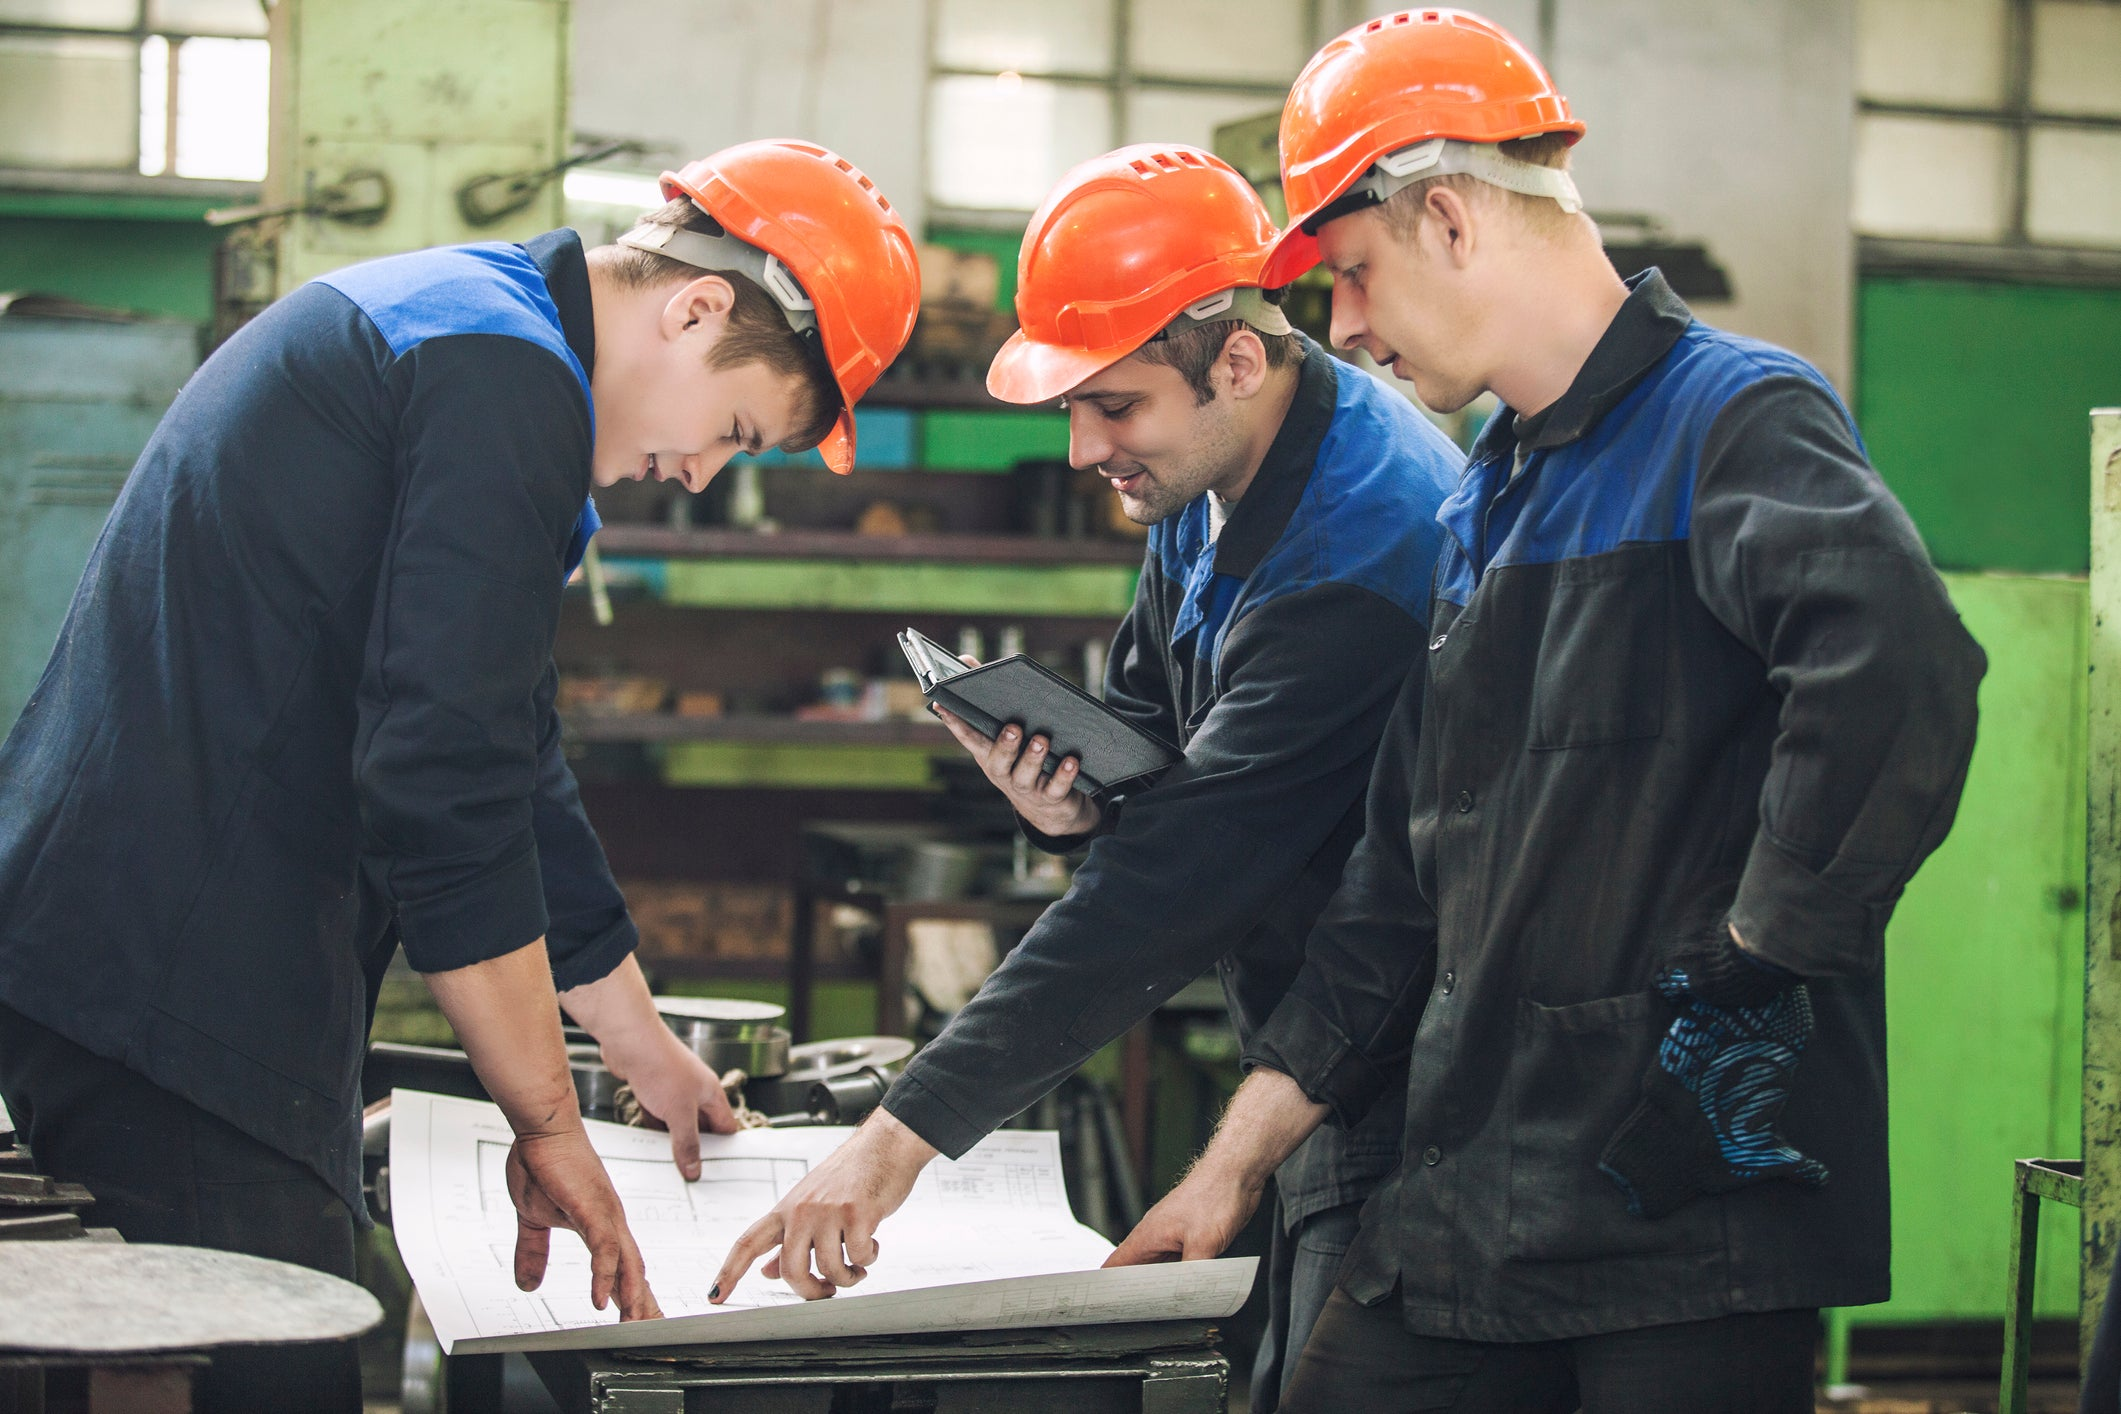 Three men looking over blueprints in an energy facility